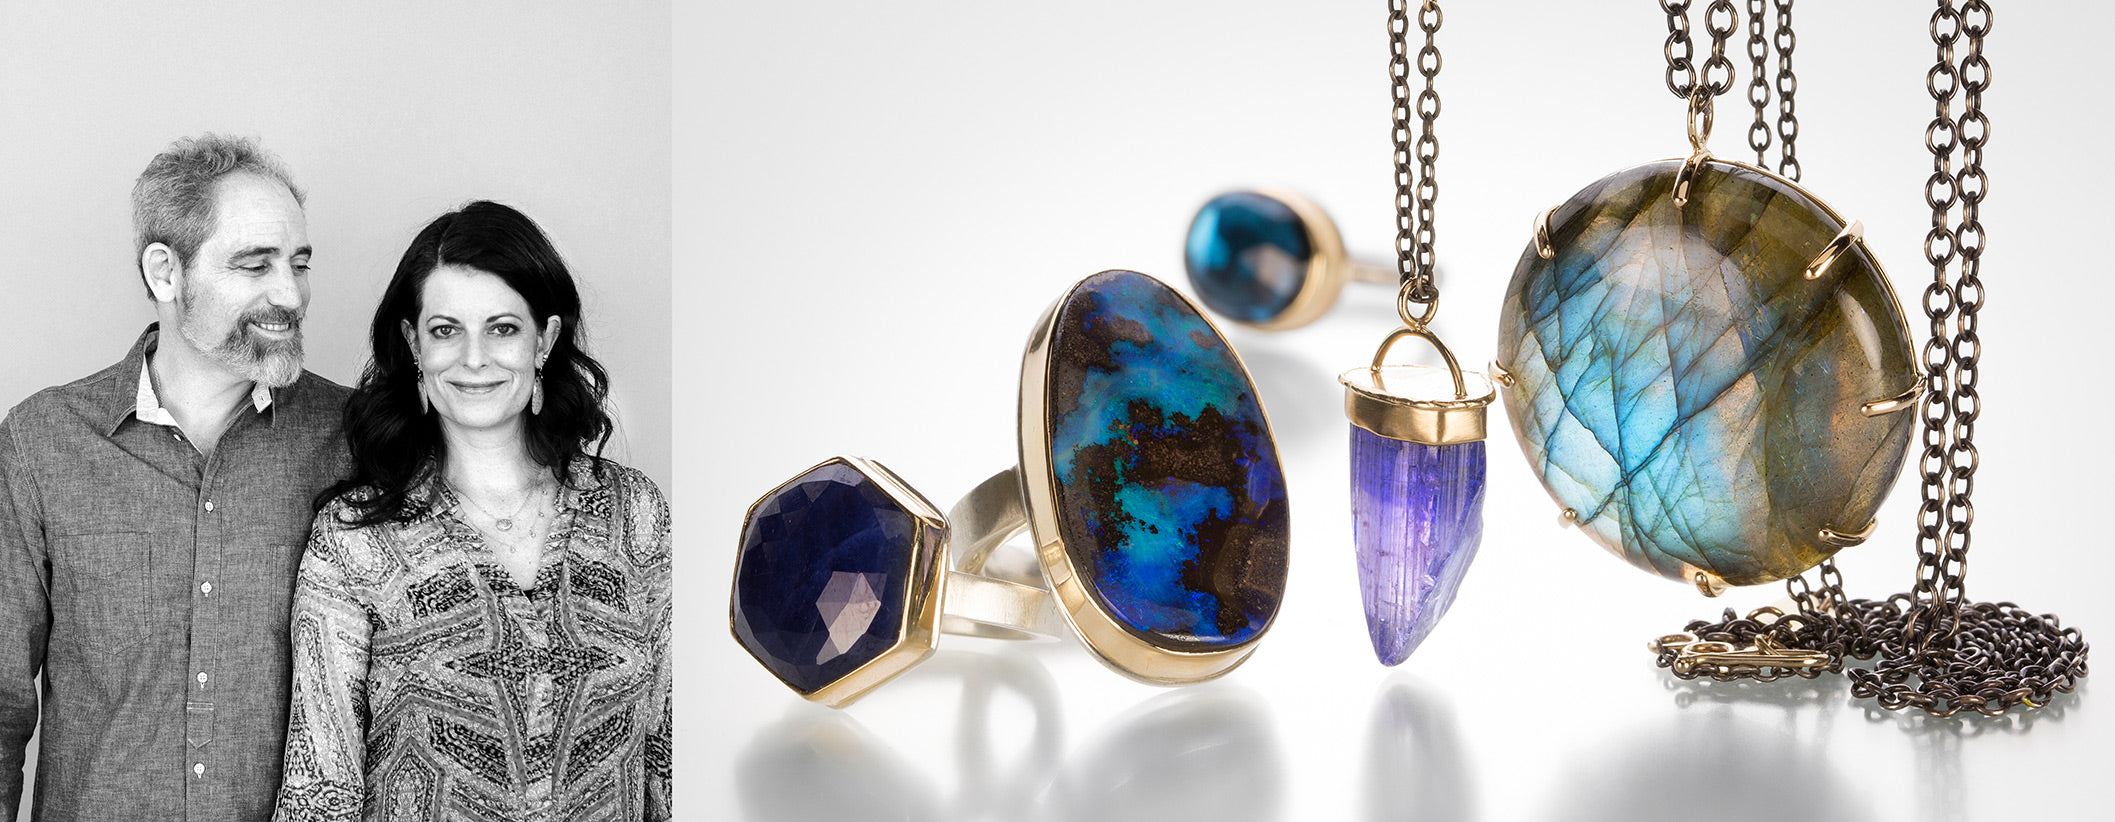 Jamie Joseph Jewelry | Designer jewelry | Shop Jamie Joseph jewelry at Quadrum, located in the Greater Boston Area, featuring an extensive collection of handcrafted gemstone earrings, semi-precious stone necklaces, gemstone lockets and one of a kind gemstone rings.